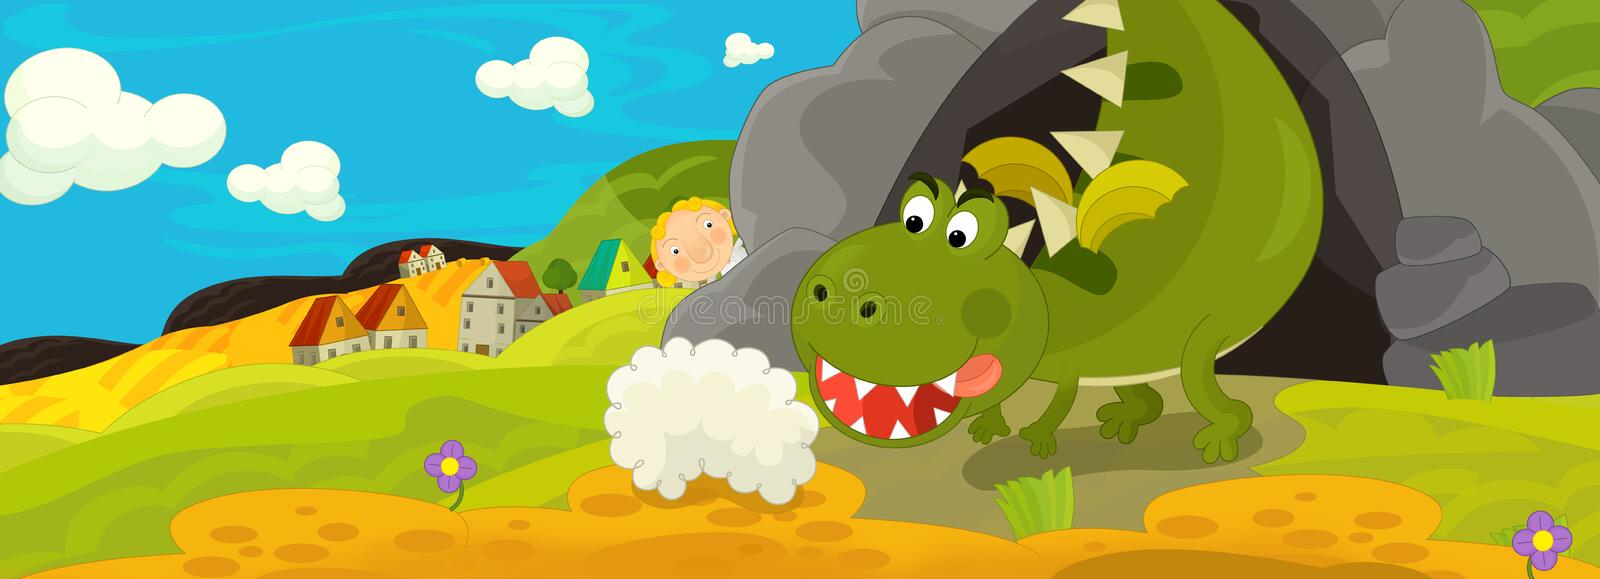 Cartoon image with green dragon being angry because of stomach pain royalty free illustration